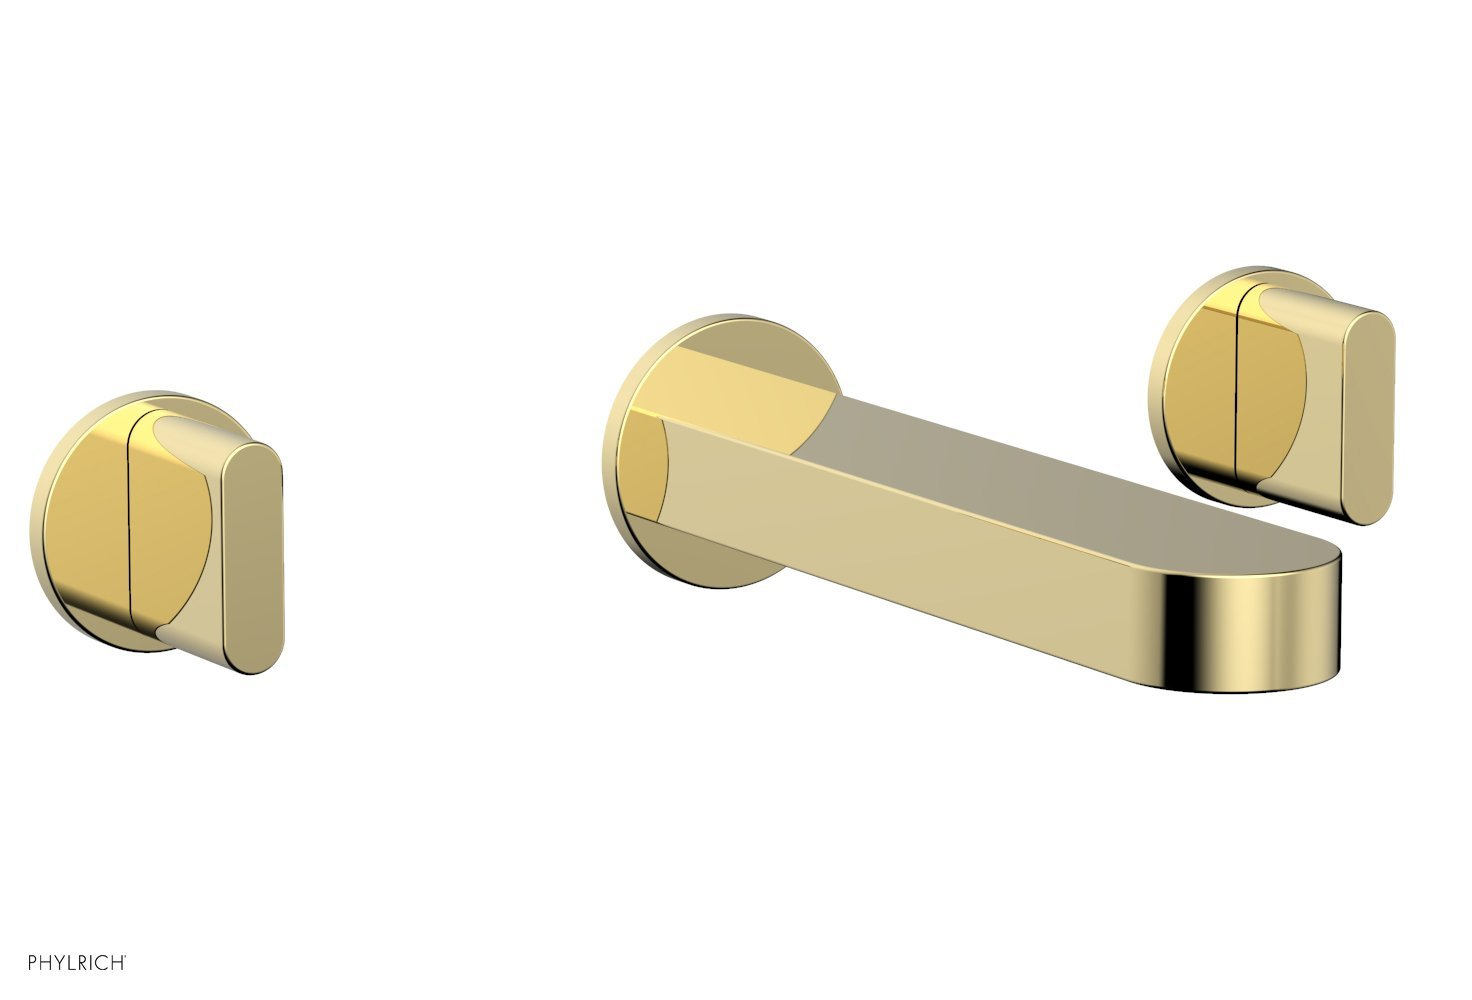 Phylrich 183-56-003 ROND Wall Tub Set - Blade Handles - Polished Brass